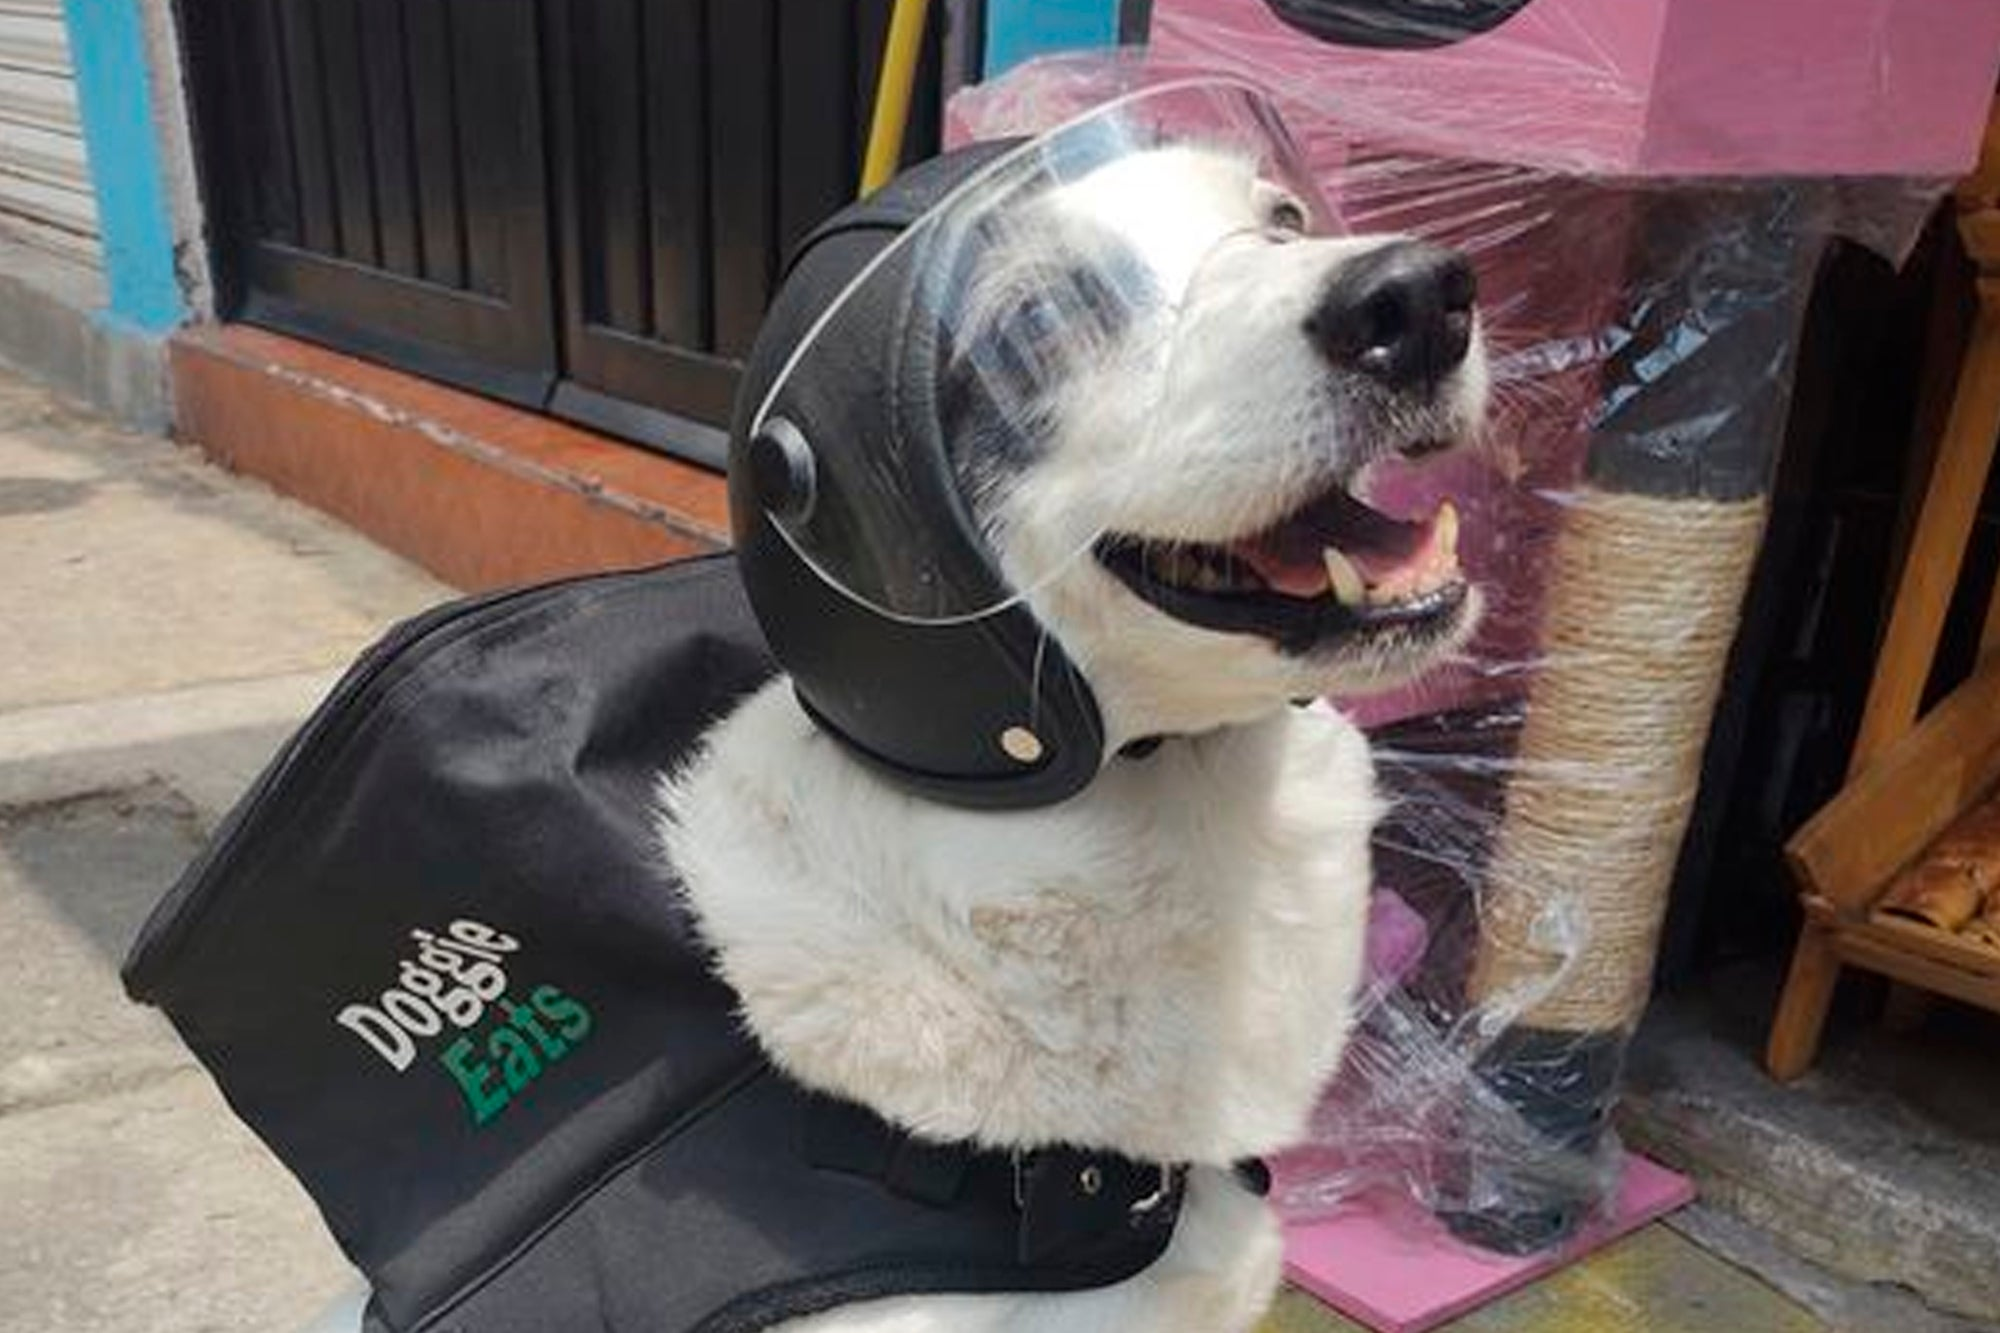 Meet Any, the 'Doggie Eats' delivery dog who works to help a tenderloin shelter